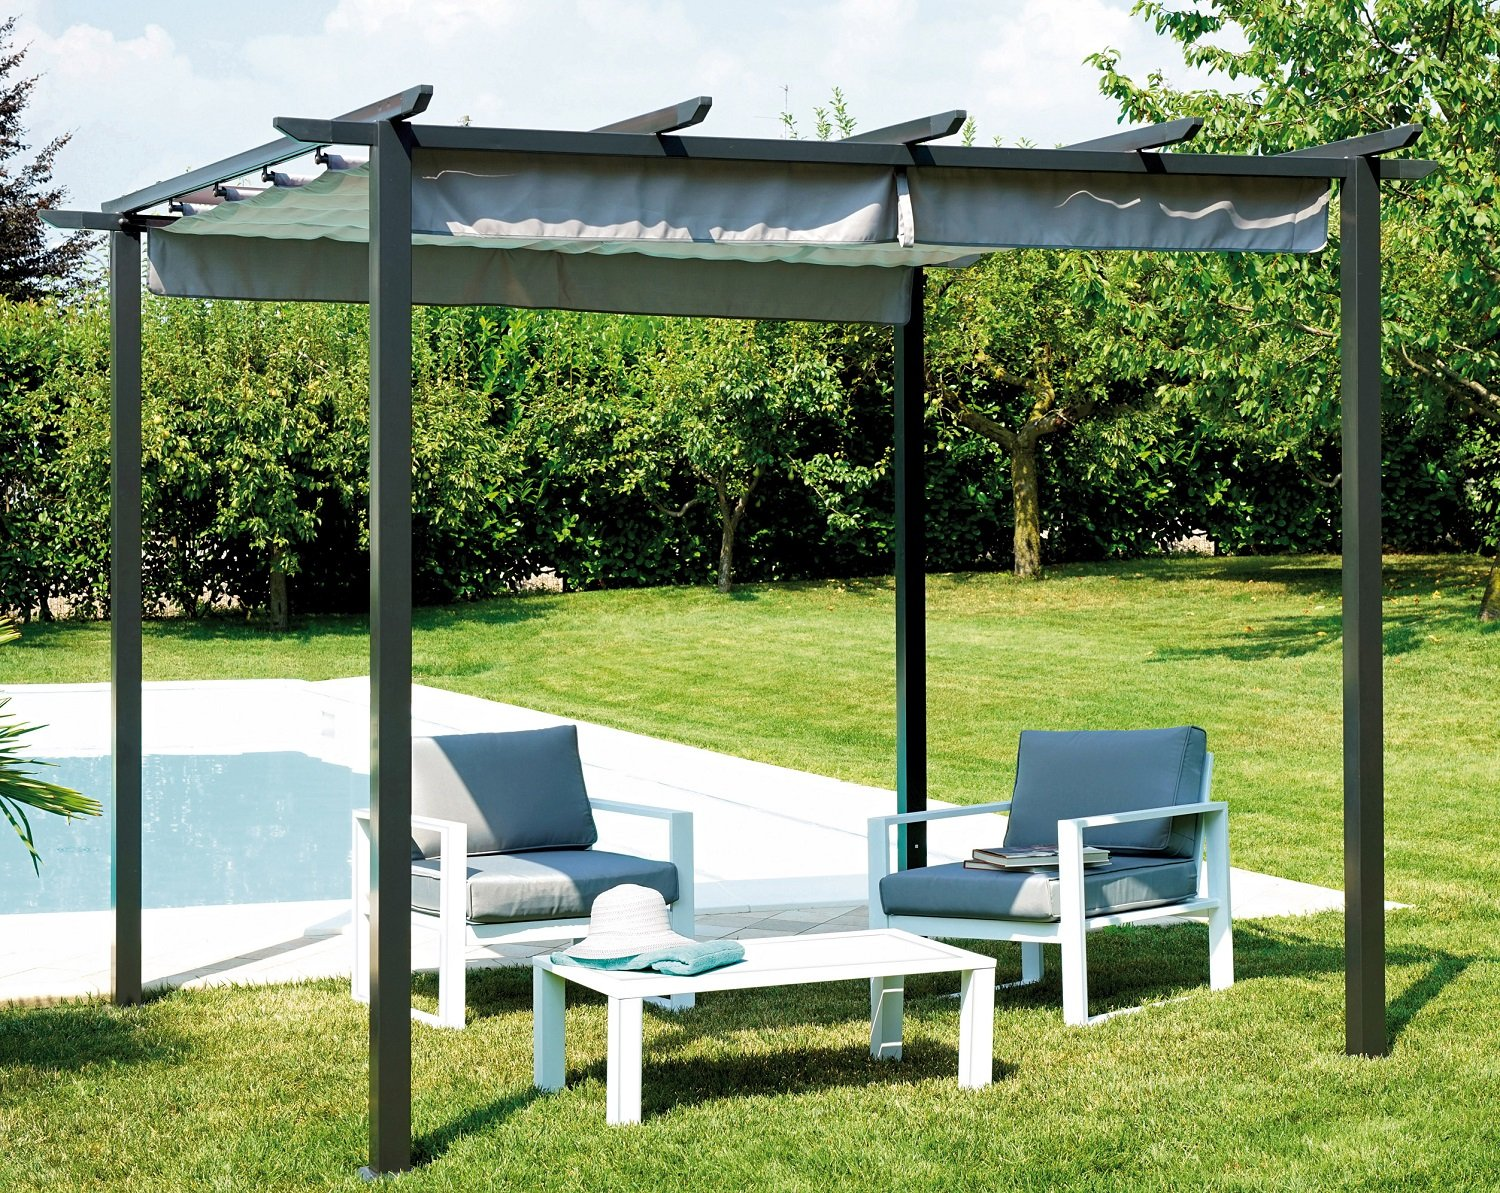 m bel garten gaz503 pavillon eisen pergola mit dach. Black Bedroom Furniture Sets. Home Design Ideas